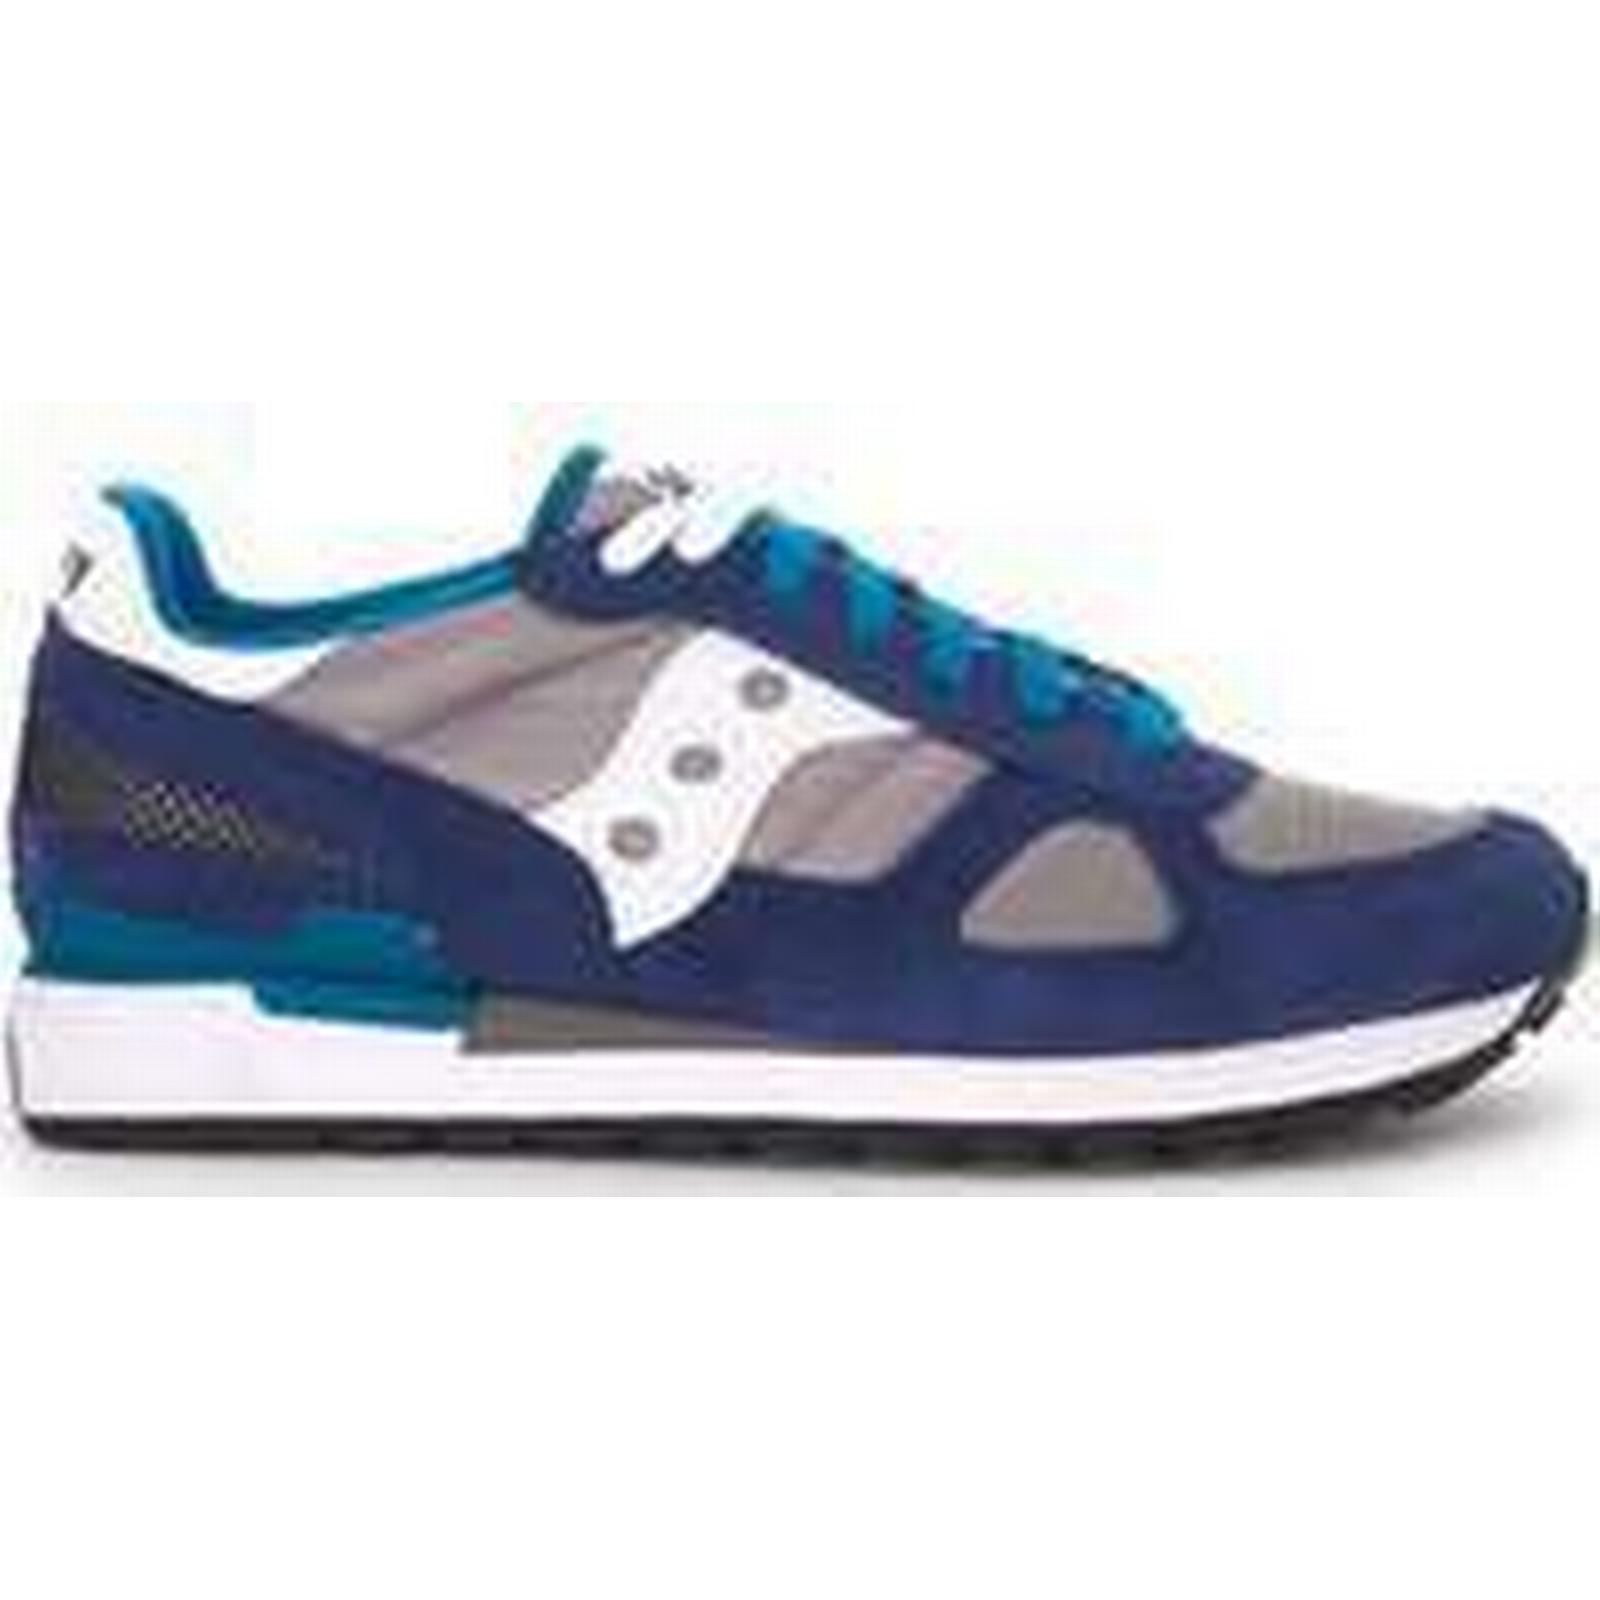 Spartoo.co.uk suede Saucony Sneaker Shadow in suede Spartoo.co.uk and grey and blue mesh fabric men's Shoes (Trainers) in Grey 5e4041